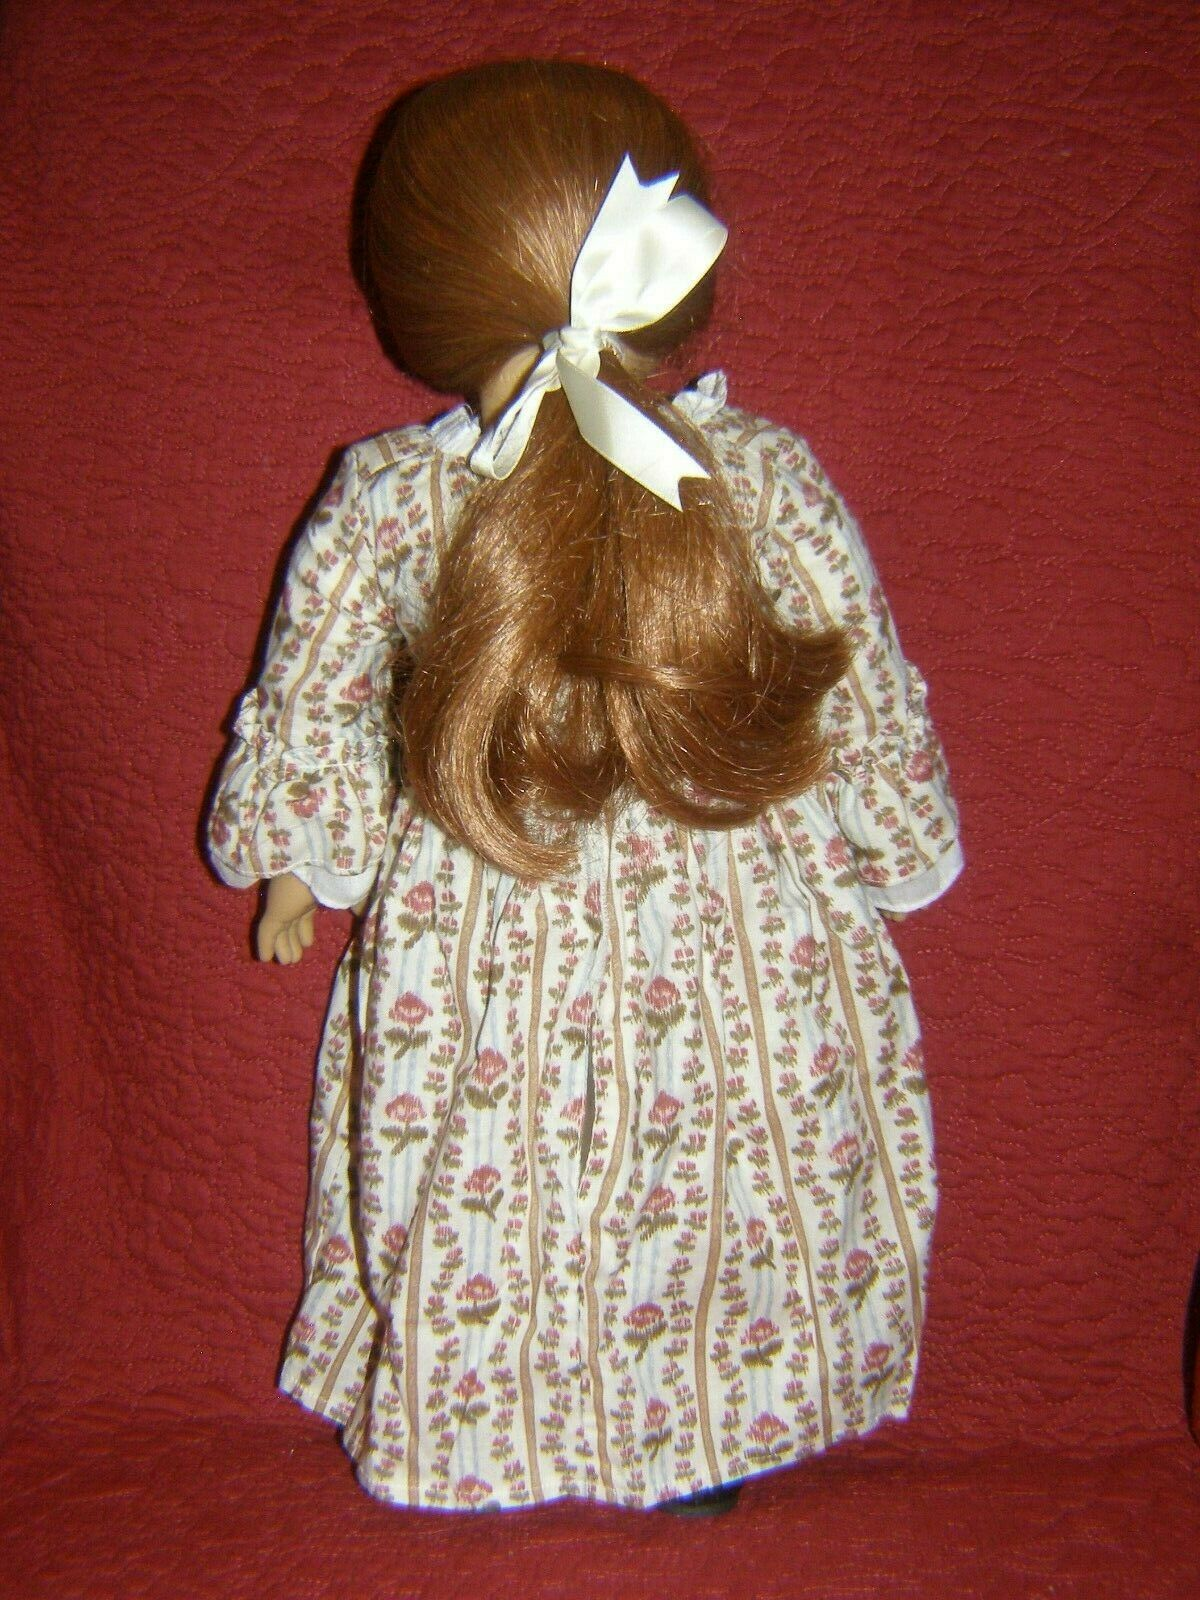 AMERICAN GIRL Felicity 18 Doll By Pleasant Co.1986 Made West Germany - $459.95